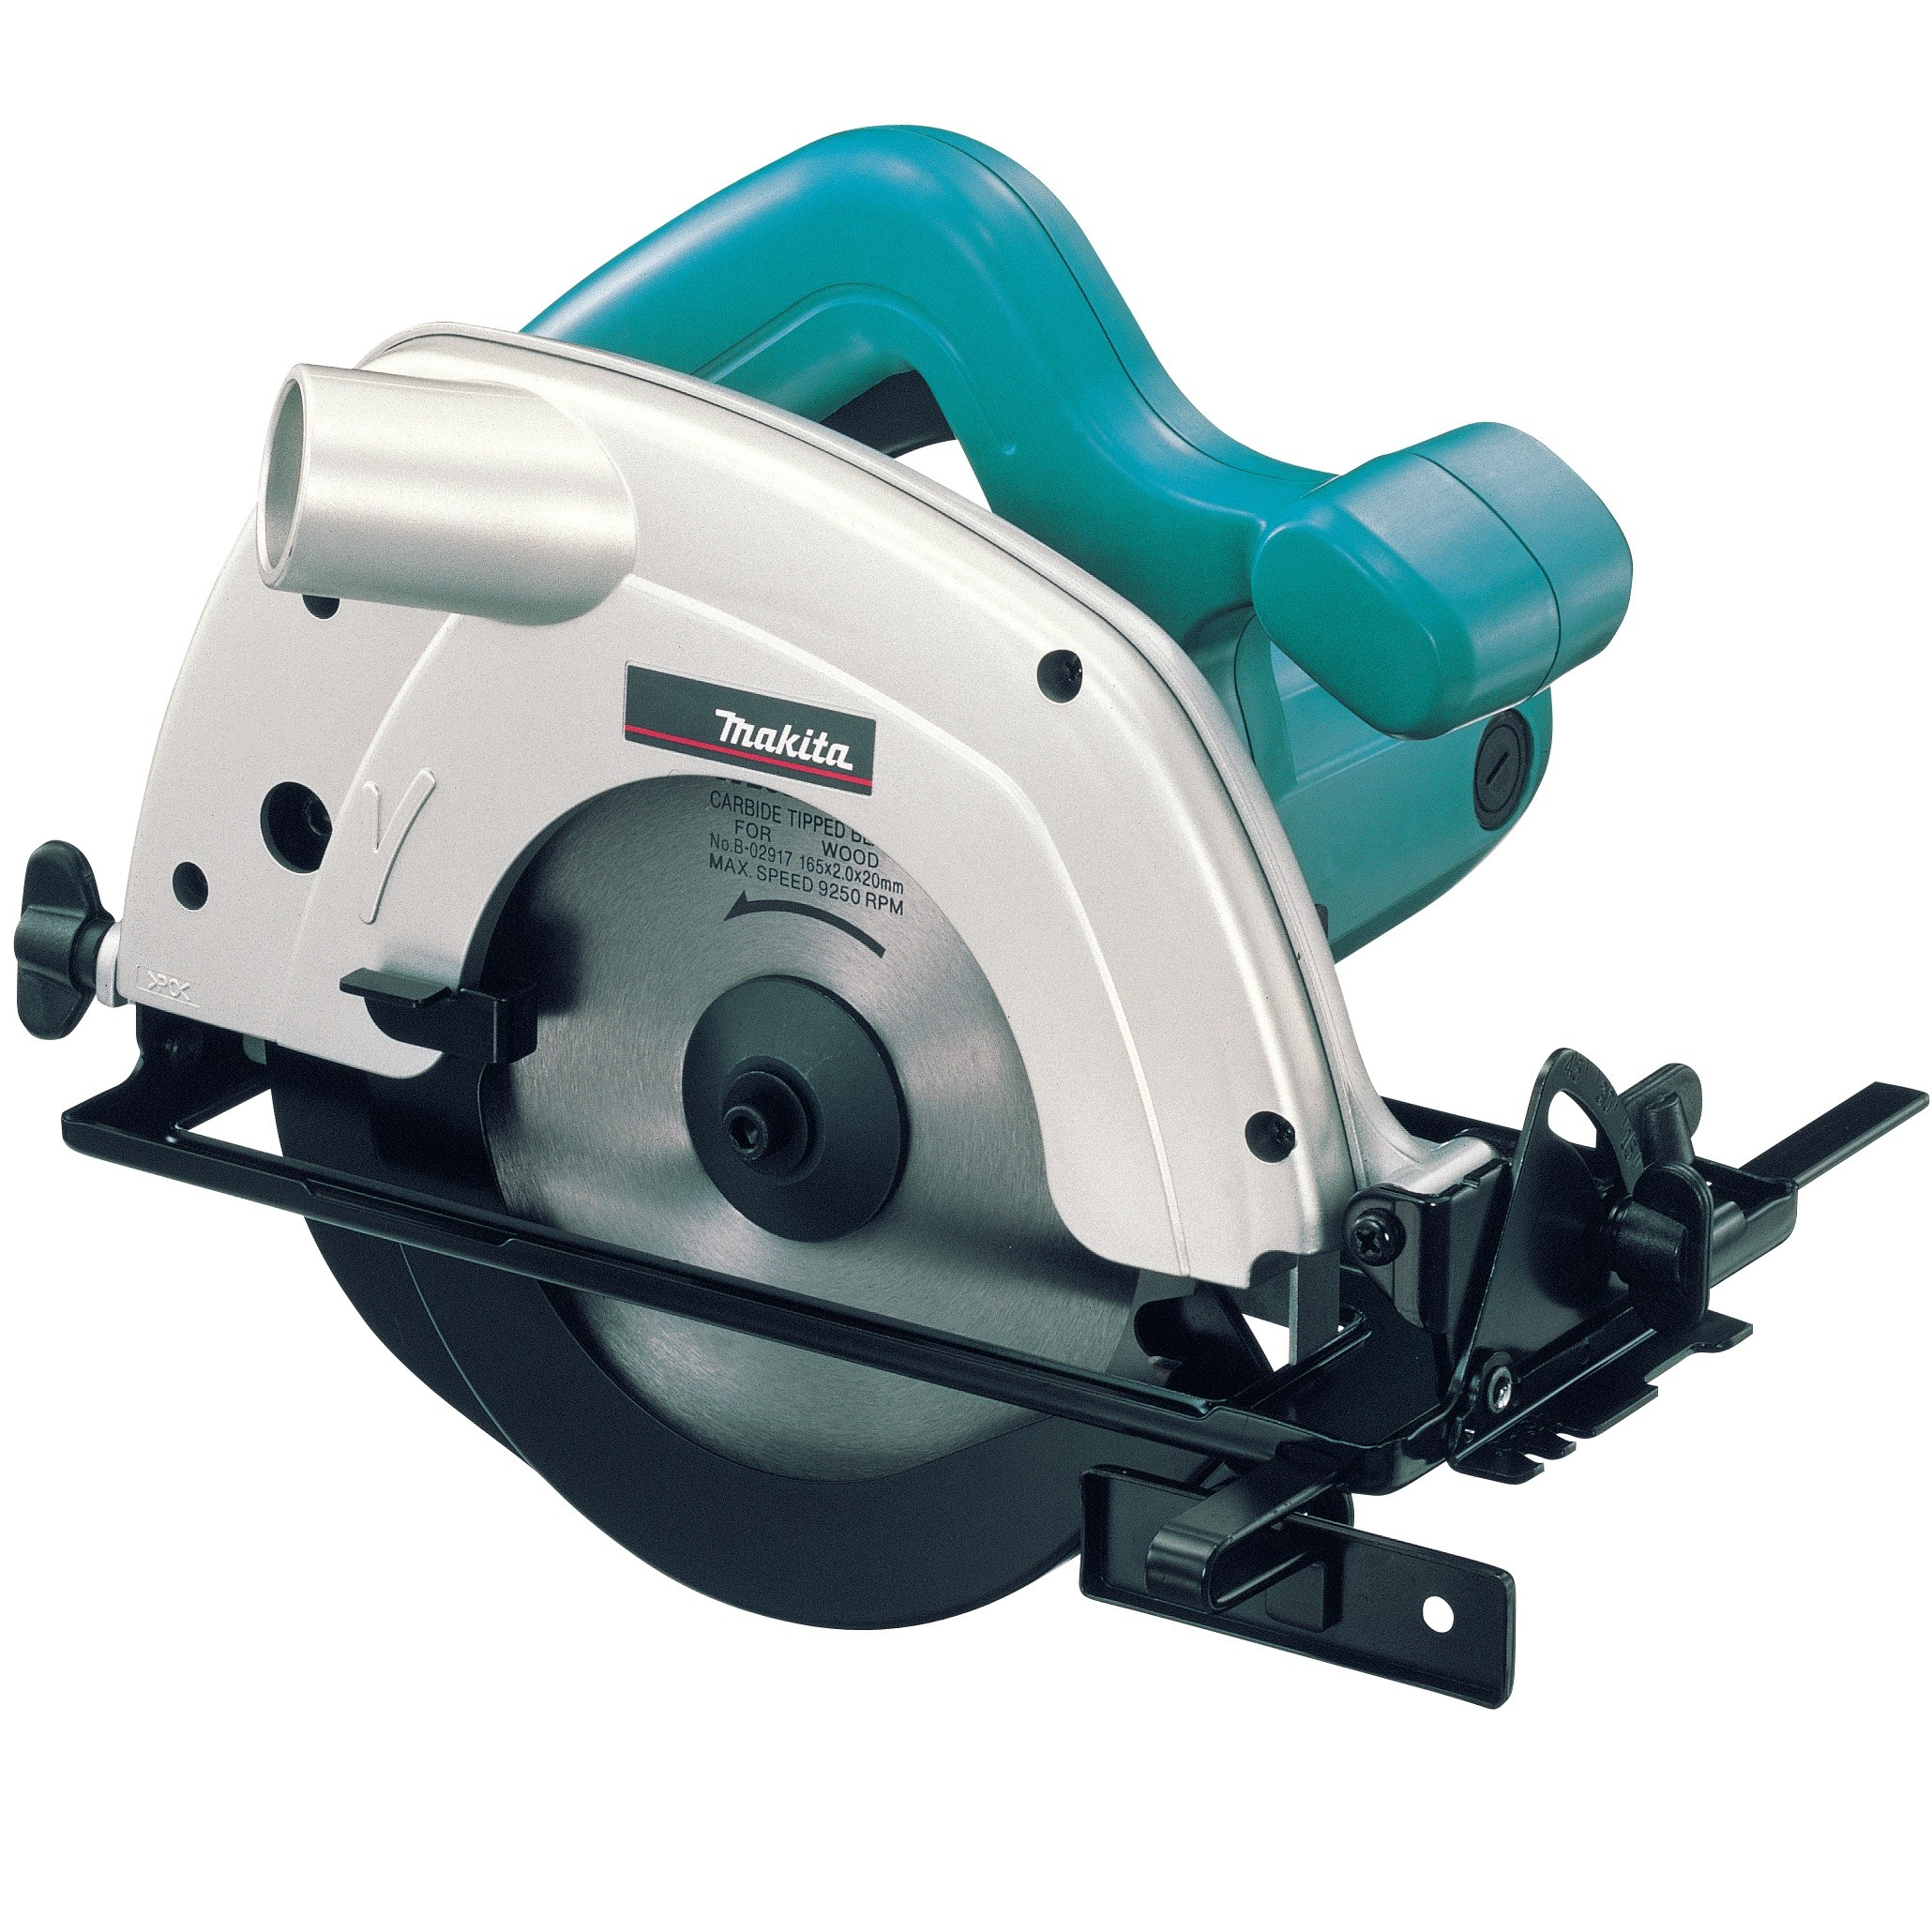 Makita 5604R 165mm Circular Saw with Anti Kickback Riving Knife